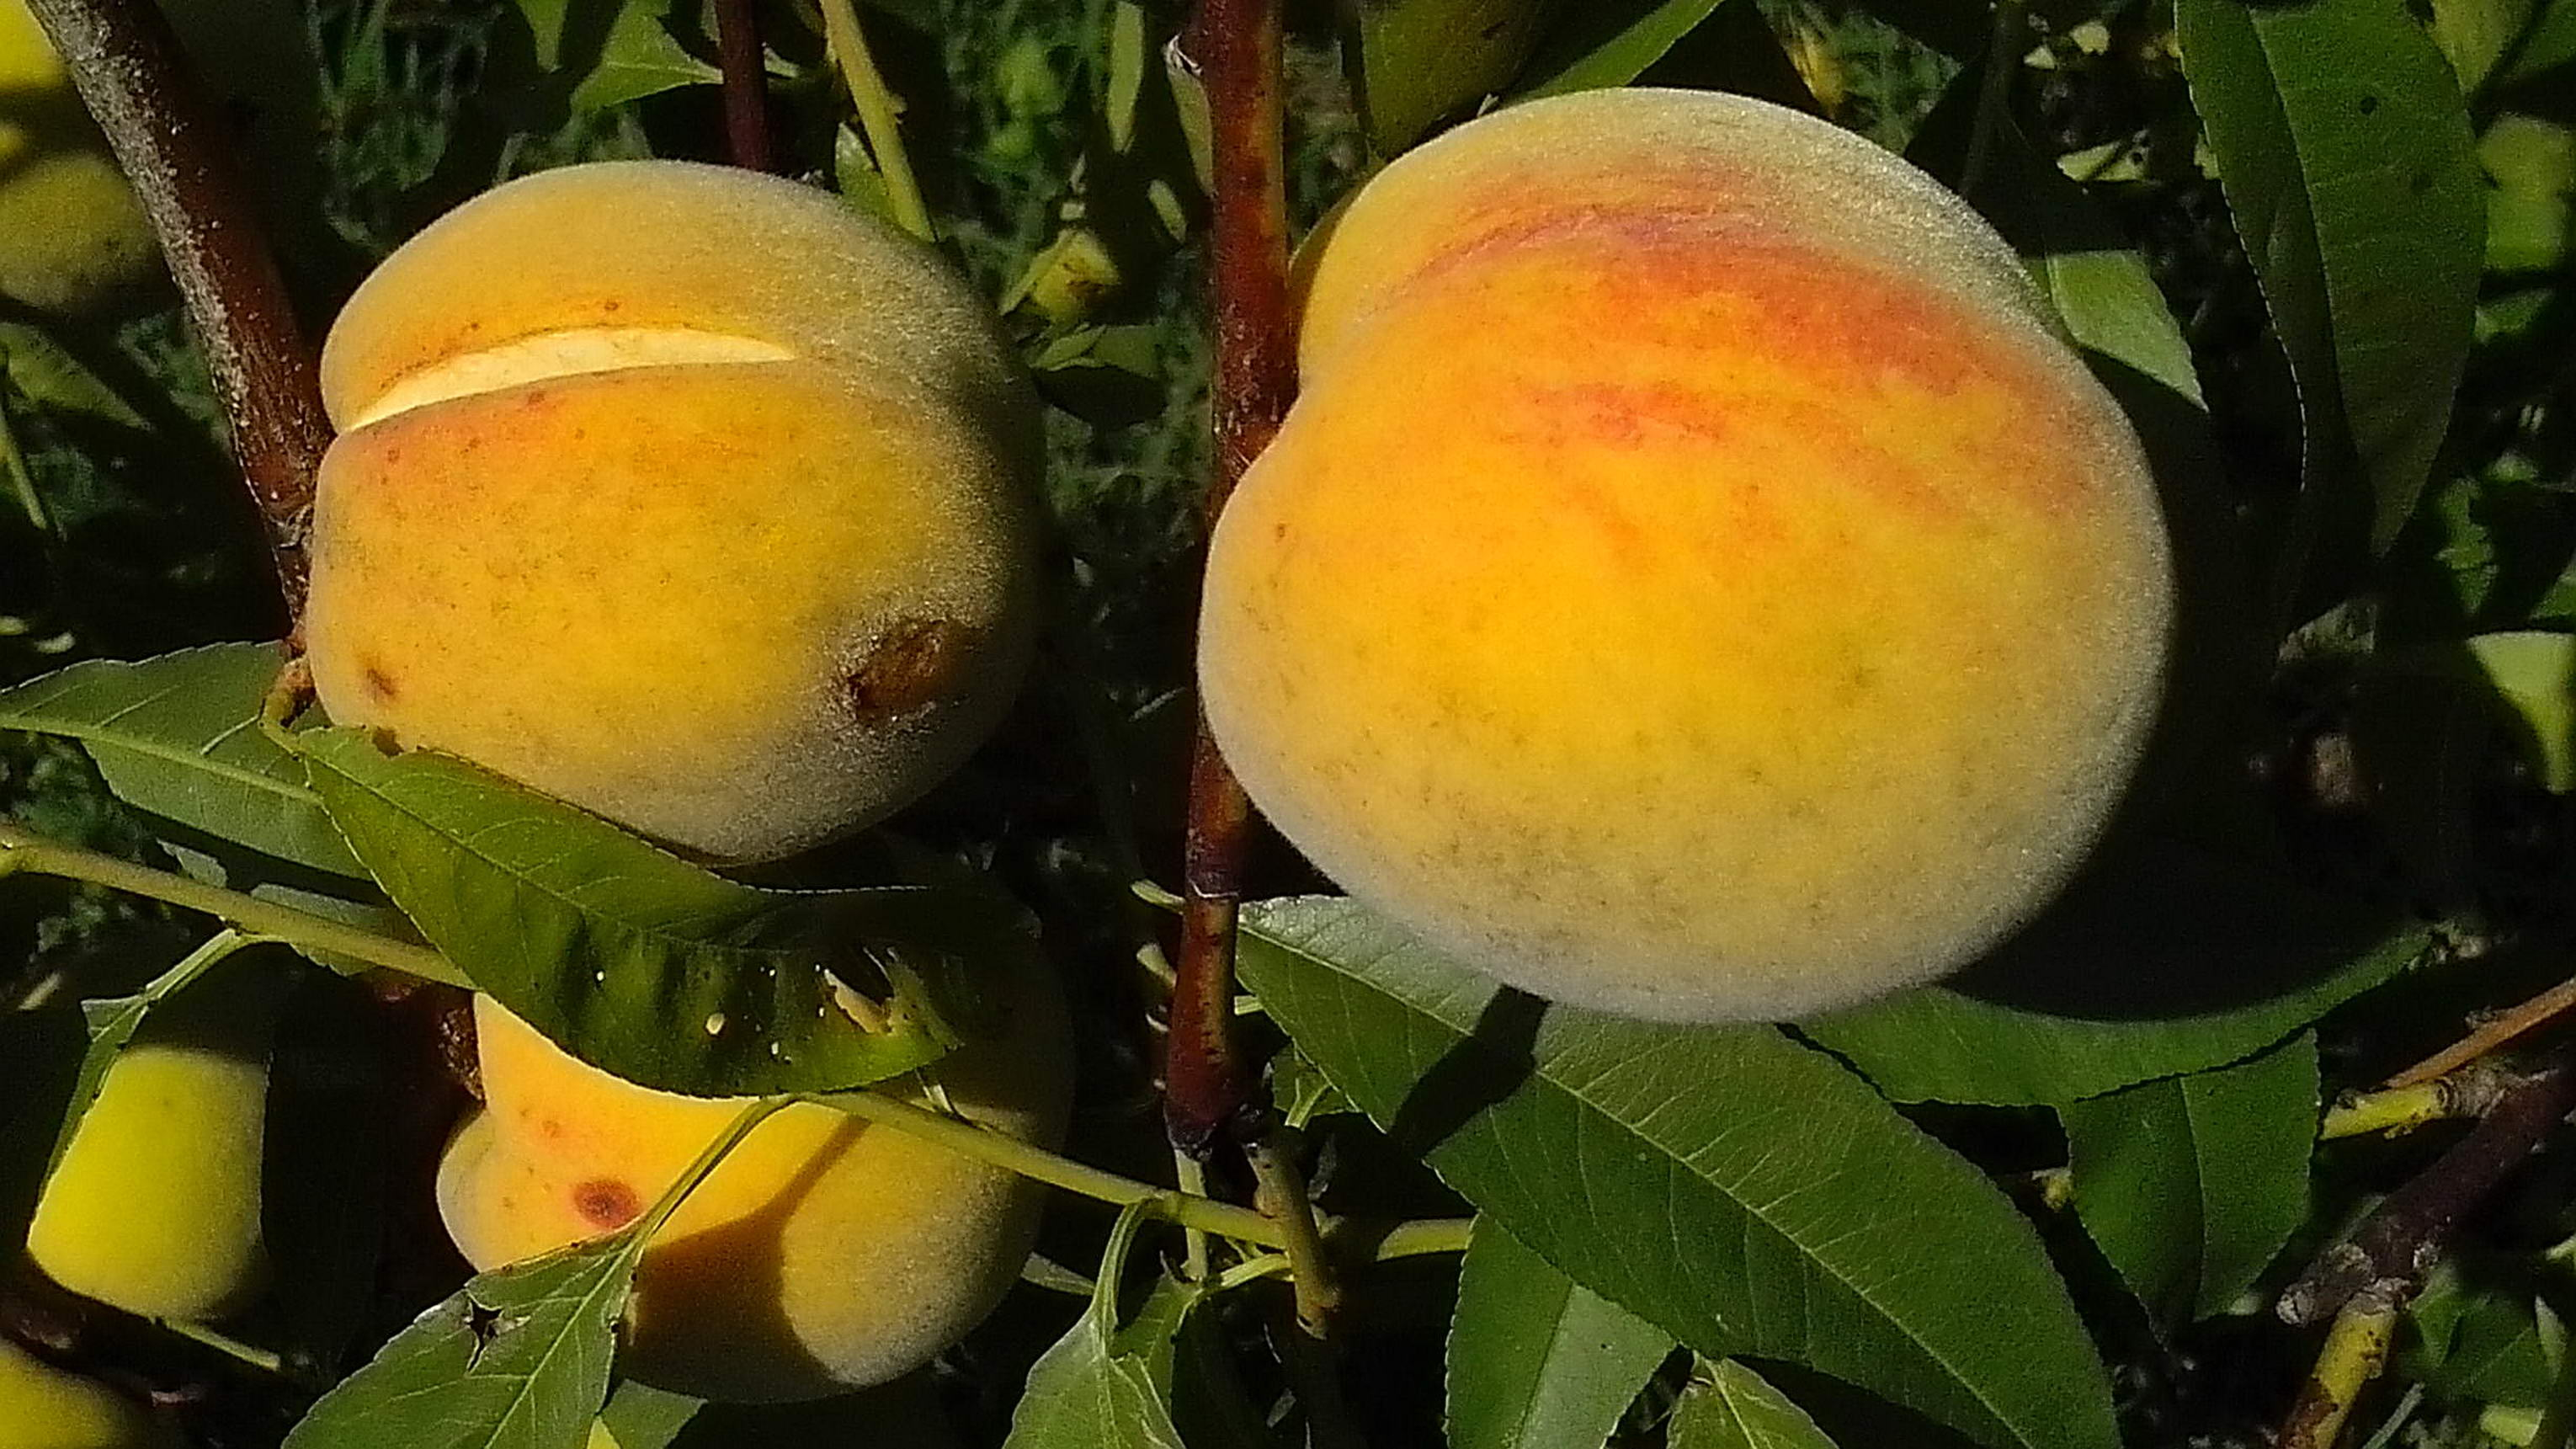 Free photograph; cracked, overripe, organically, grown, peaches, orchard